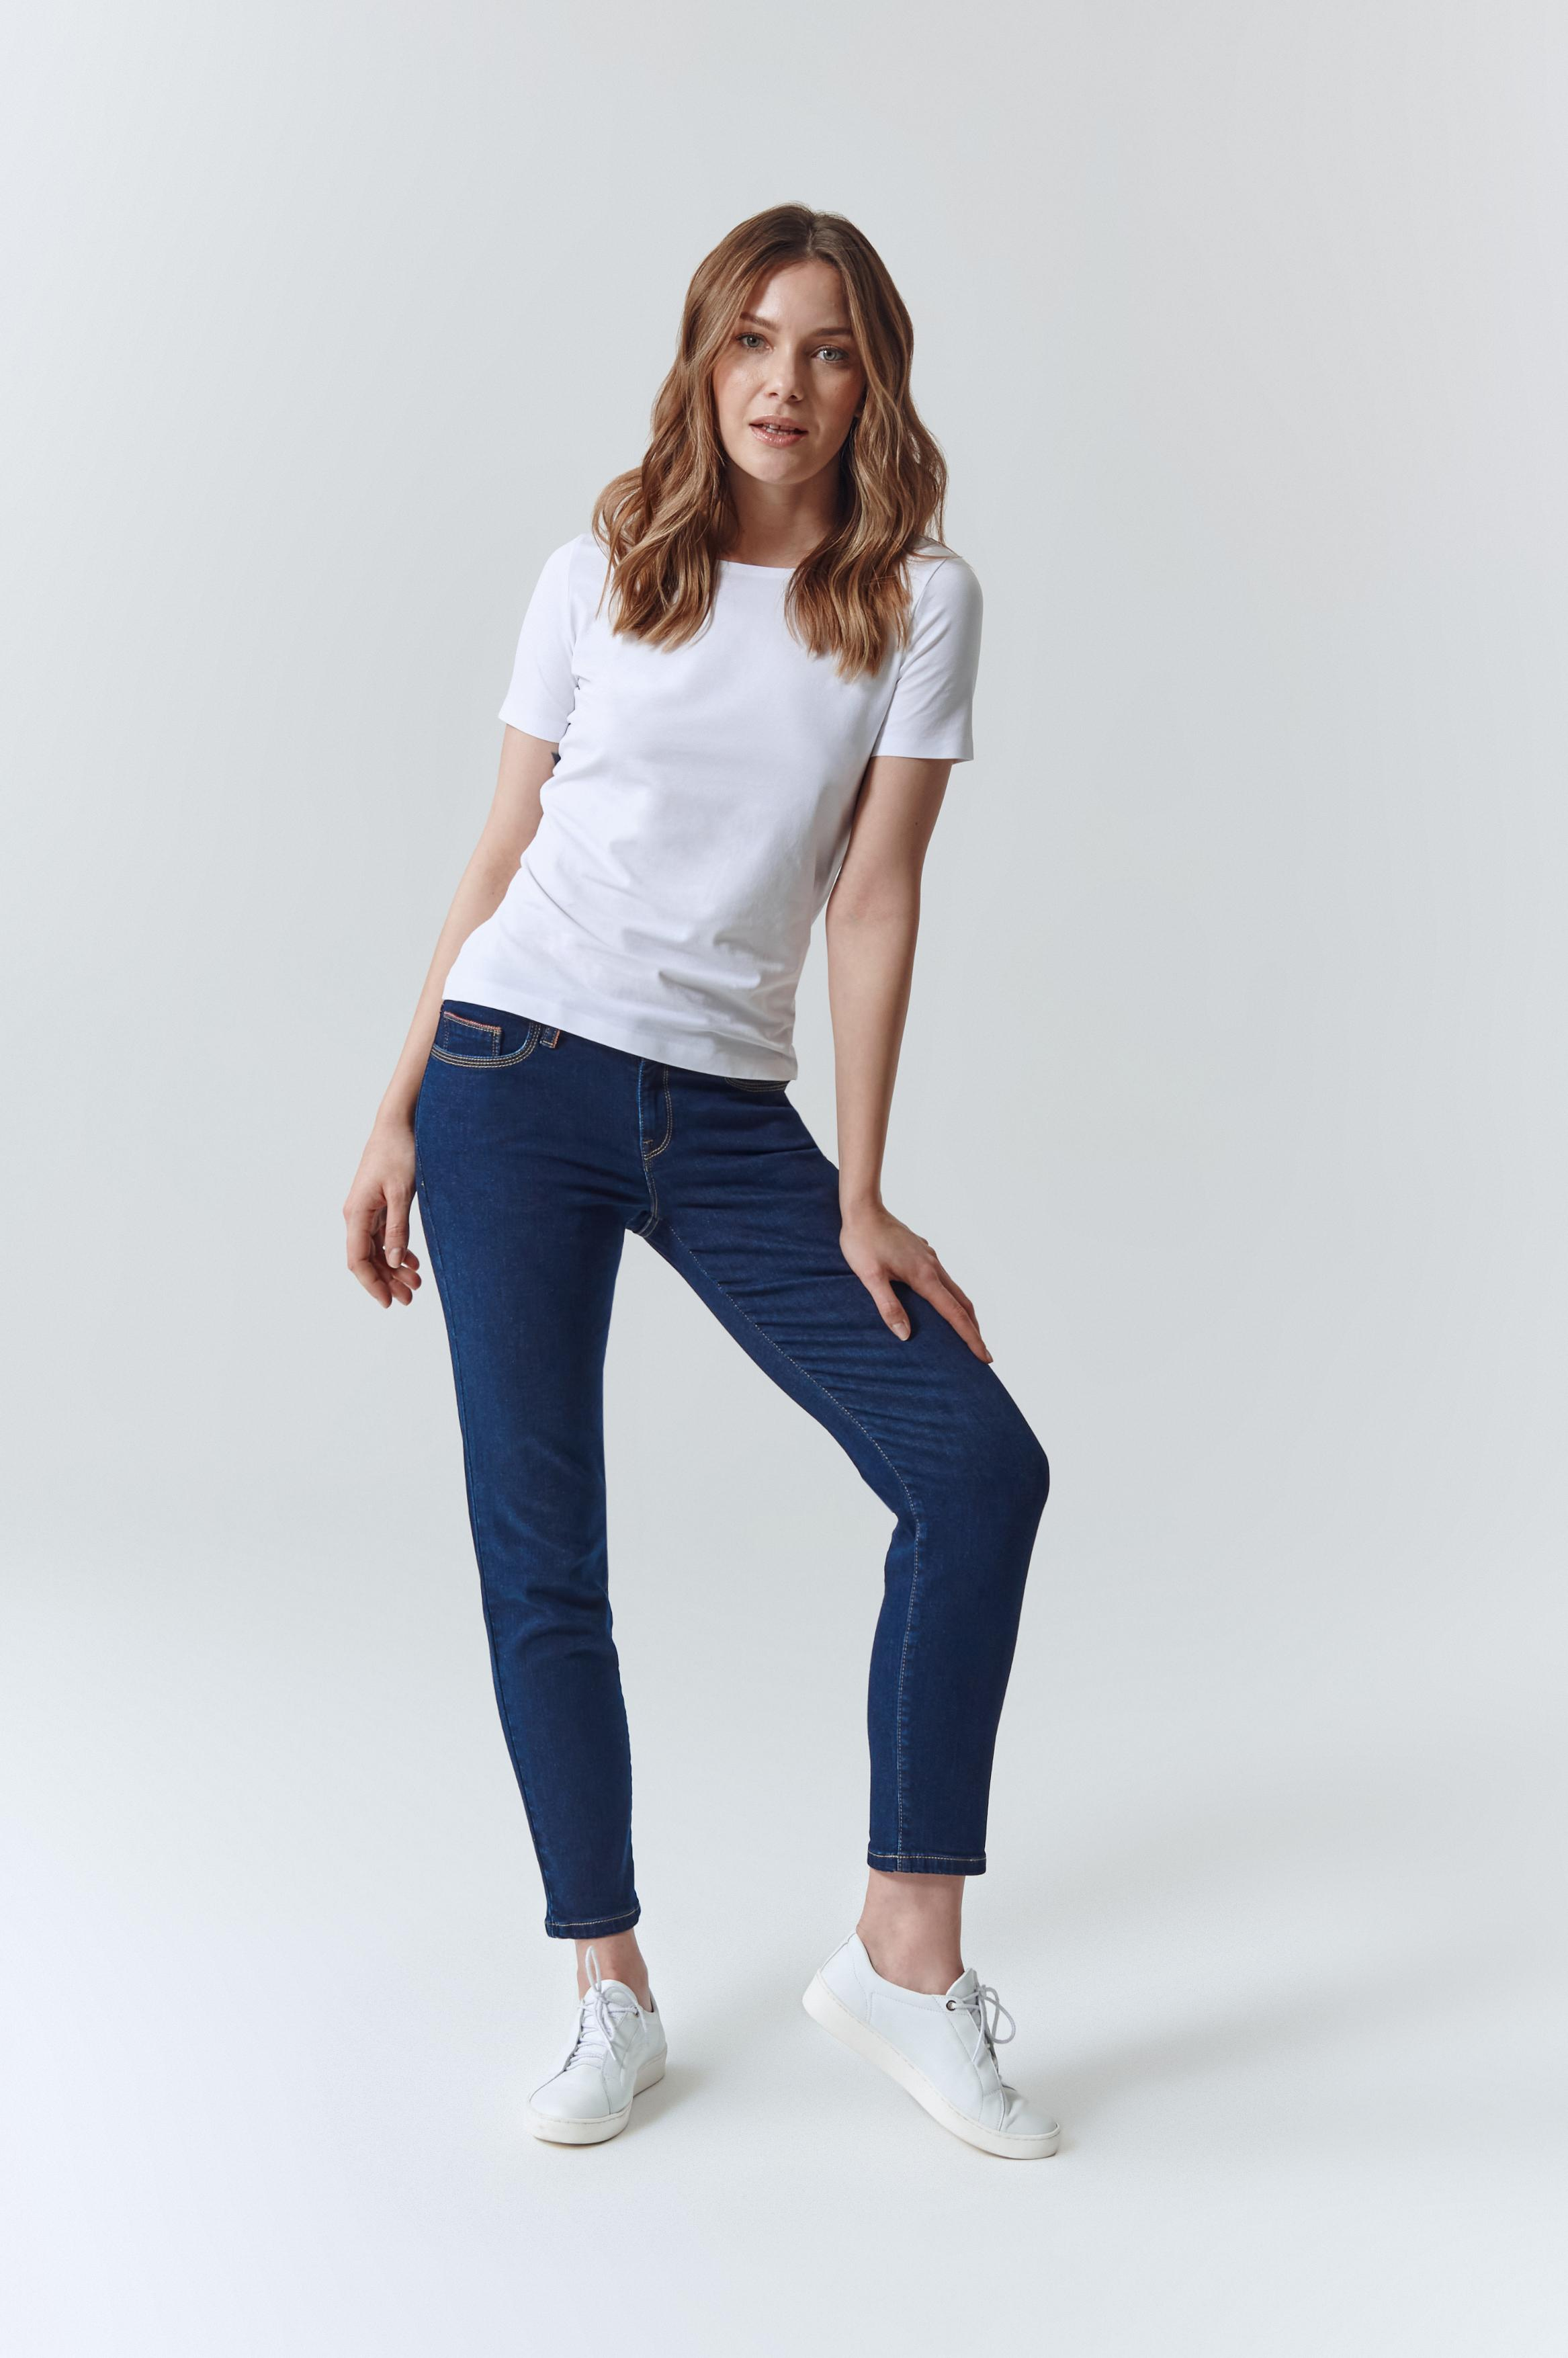 LADIES' DENIM PANTS REZIMA